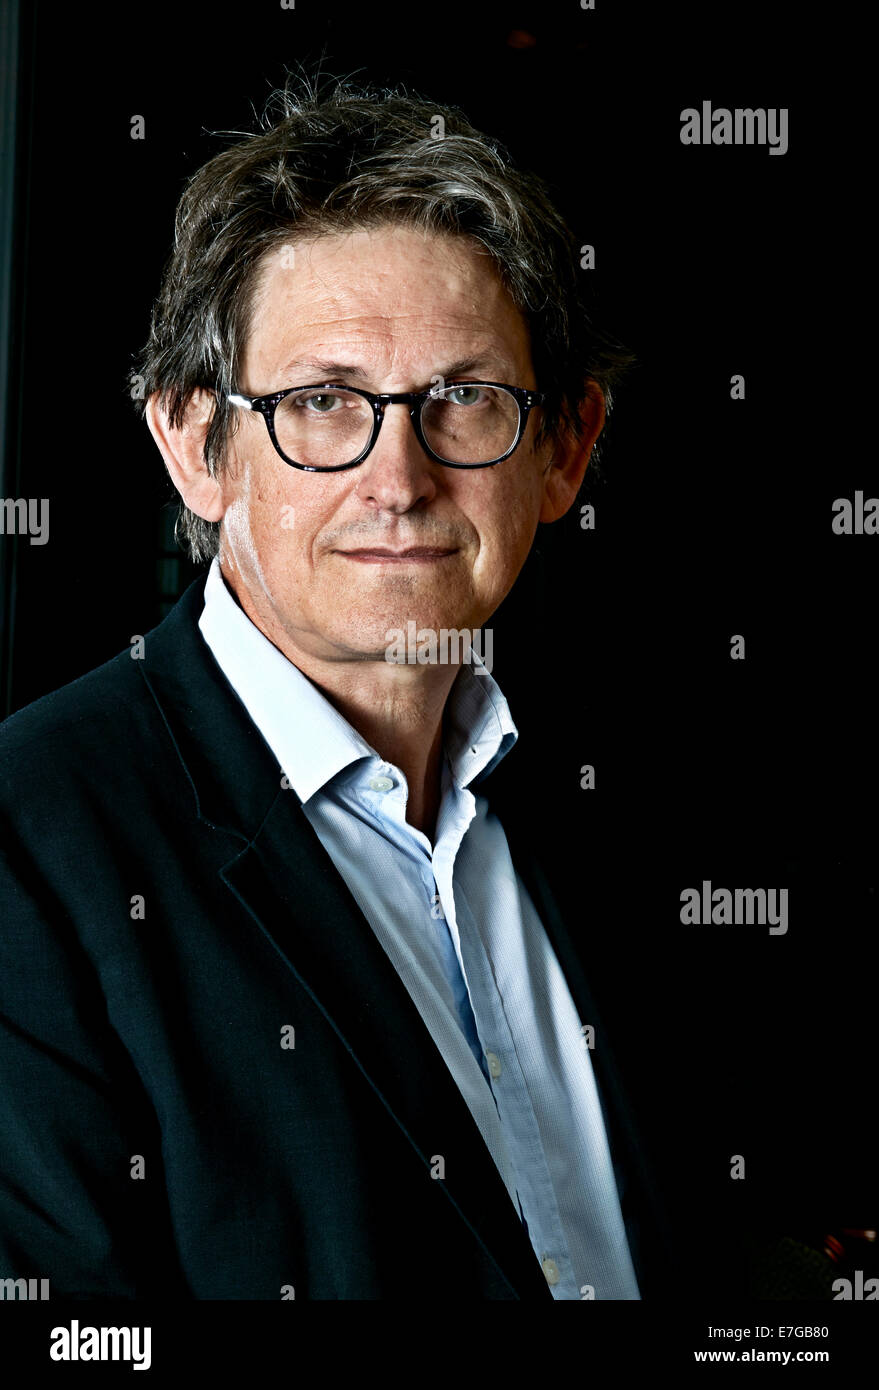 ALAN RUSBRIDGER at the Oldie Literary lunch 03/09/13 - Stock Image